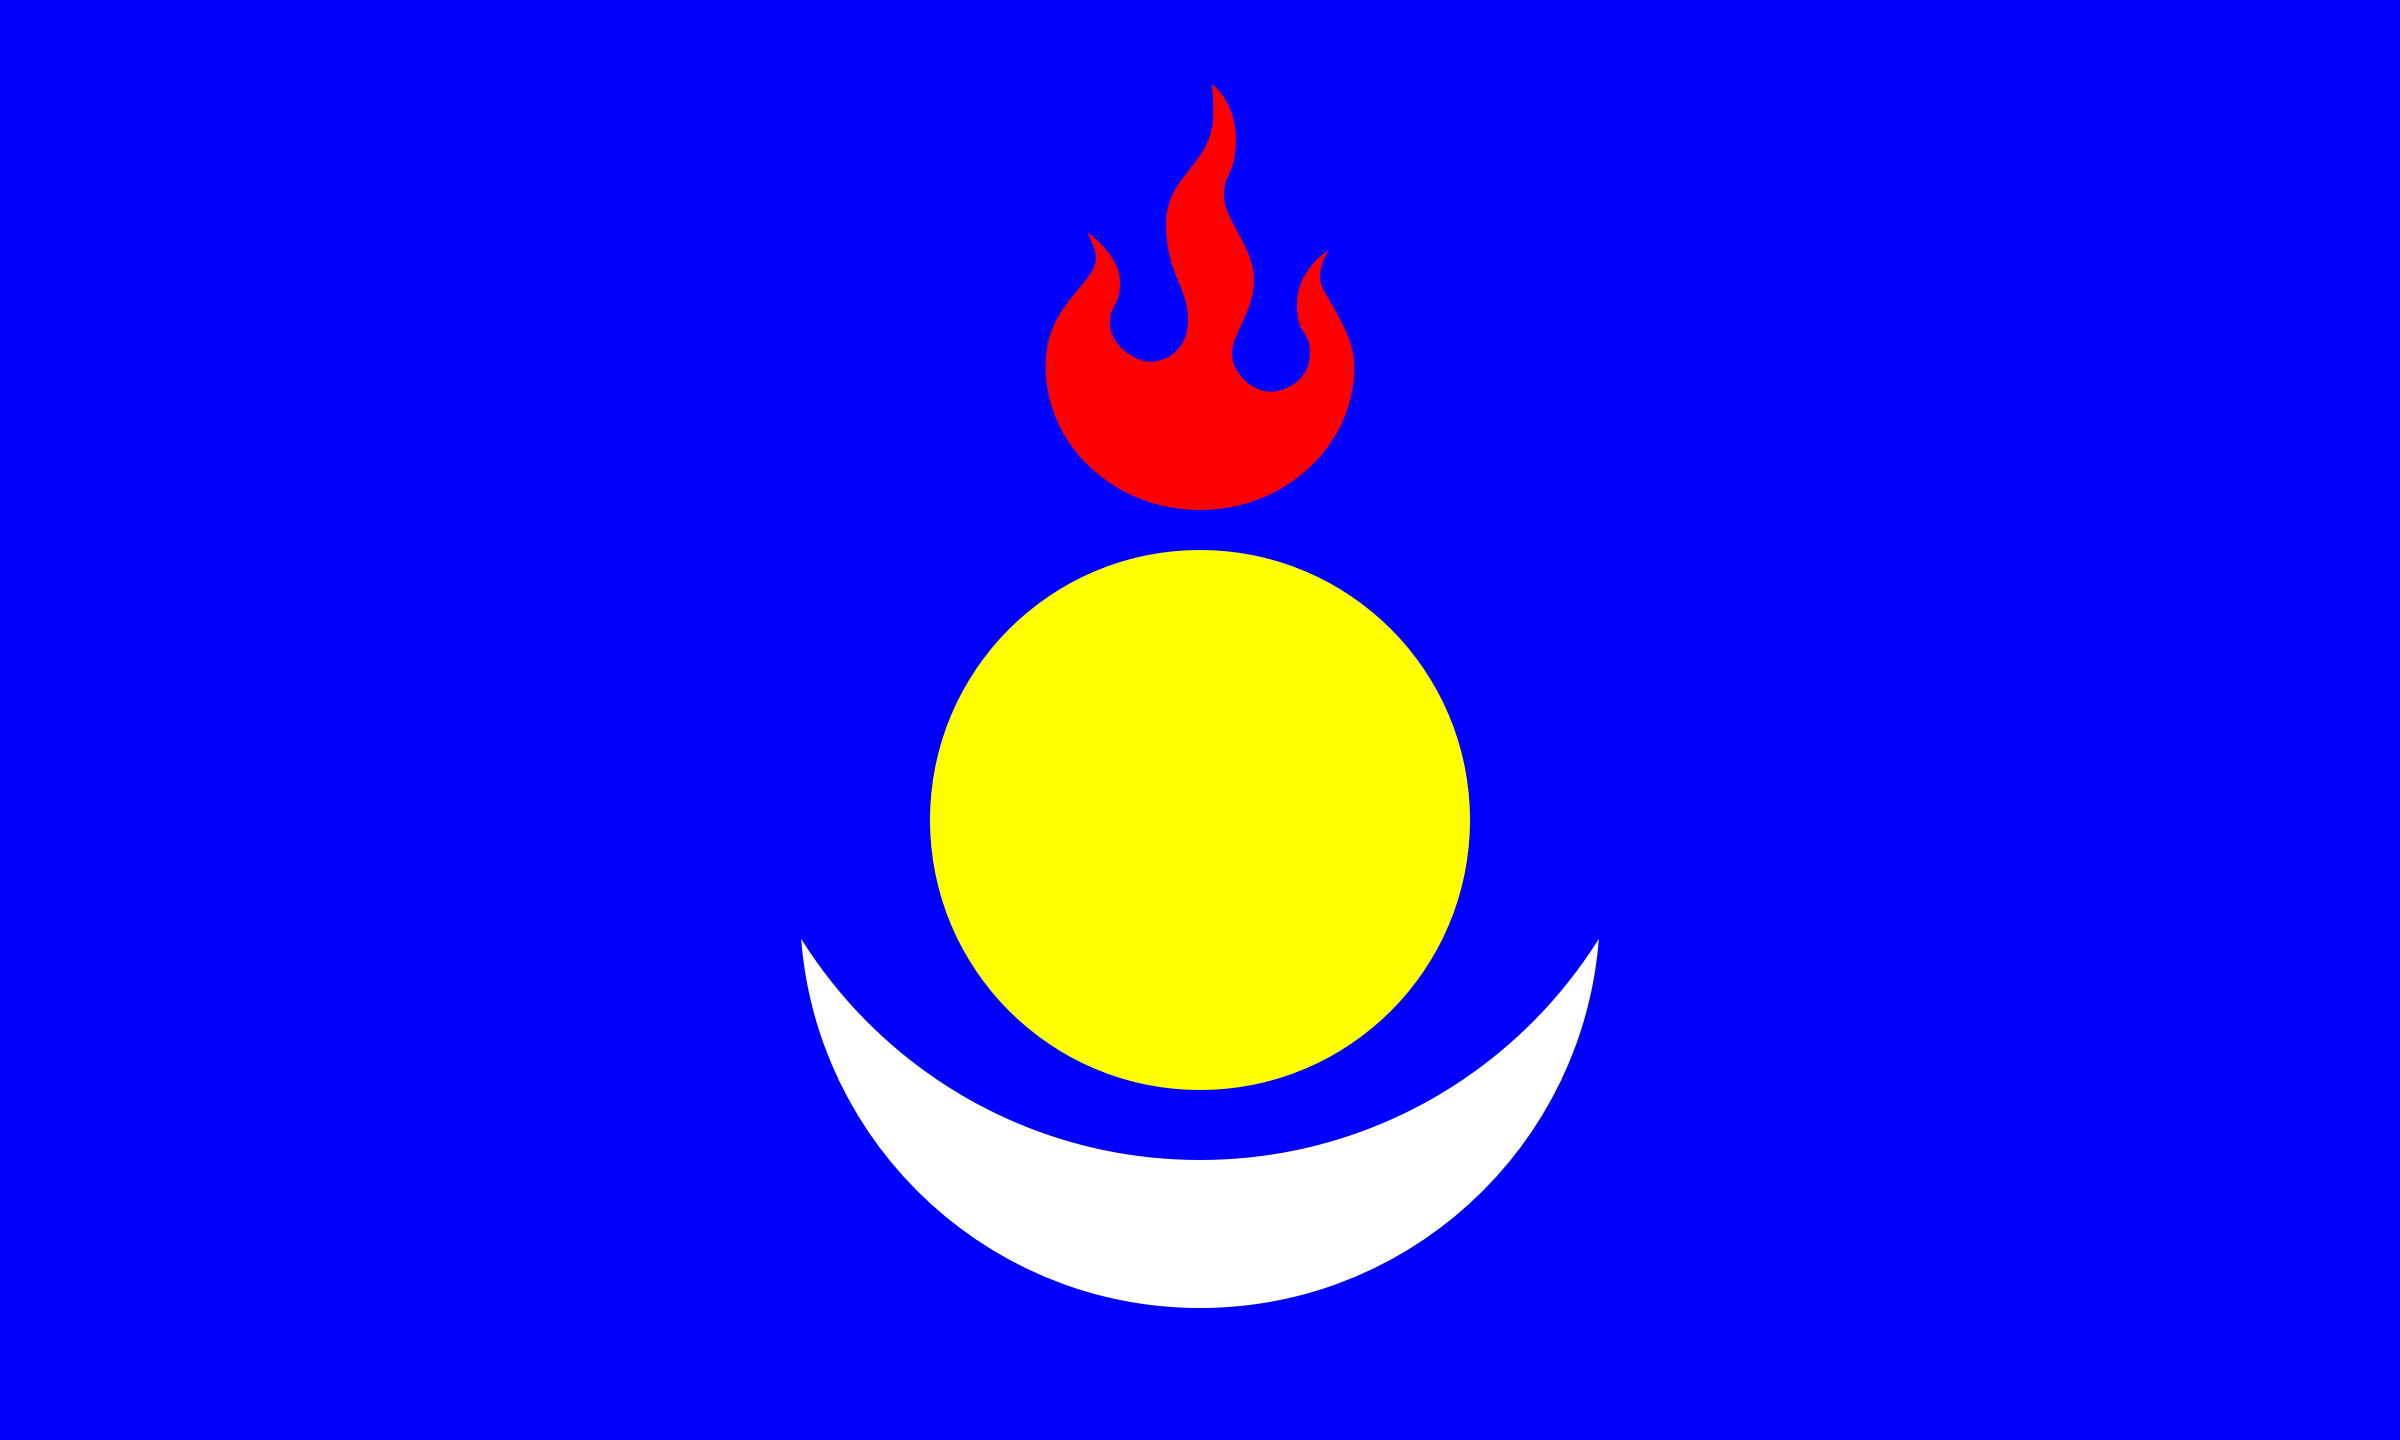 South Mongolia flag by Clon